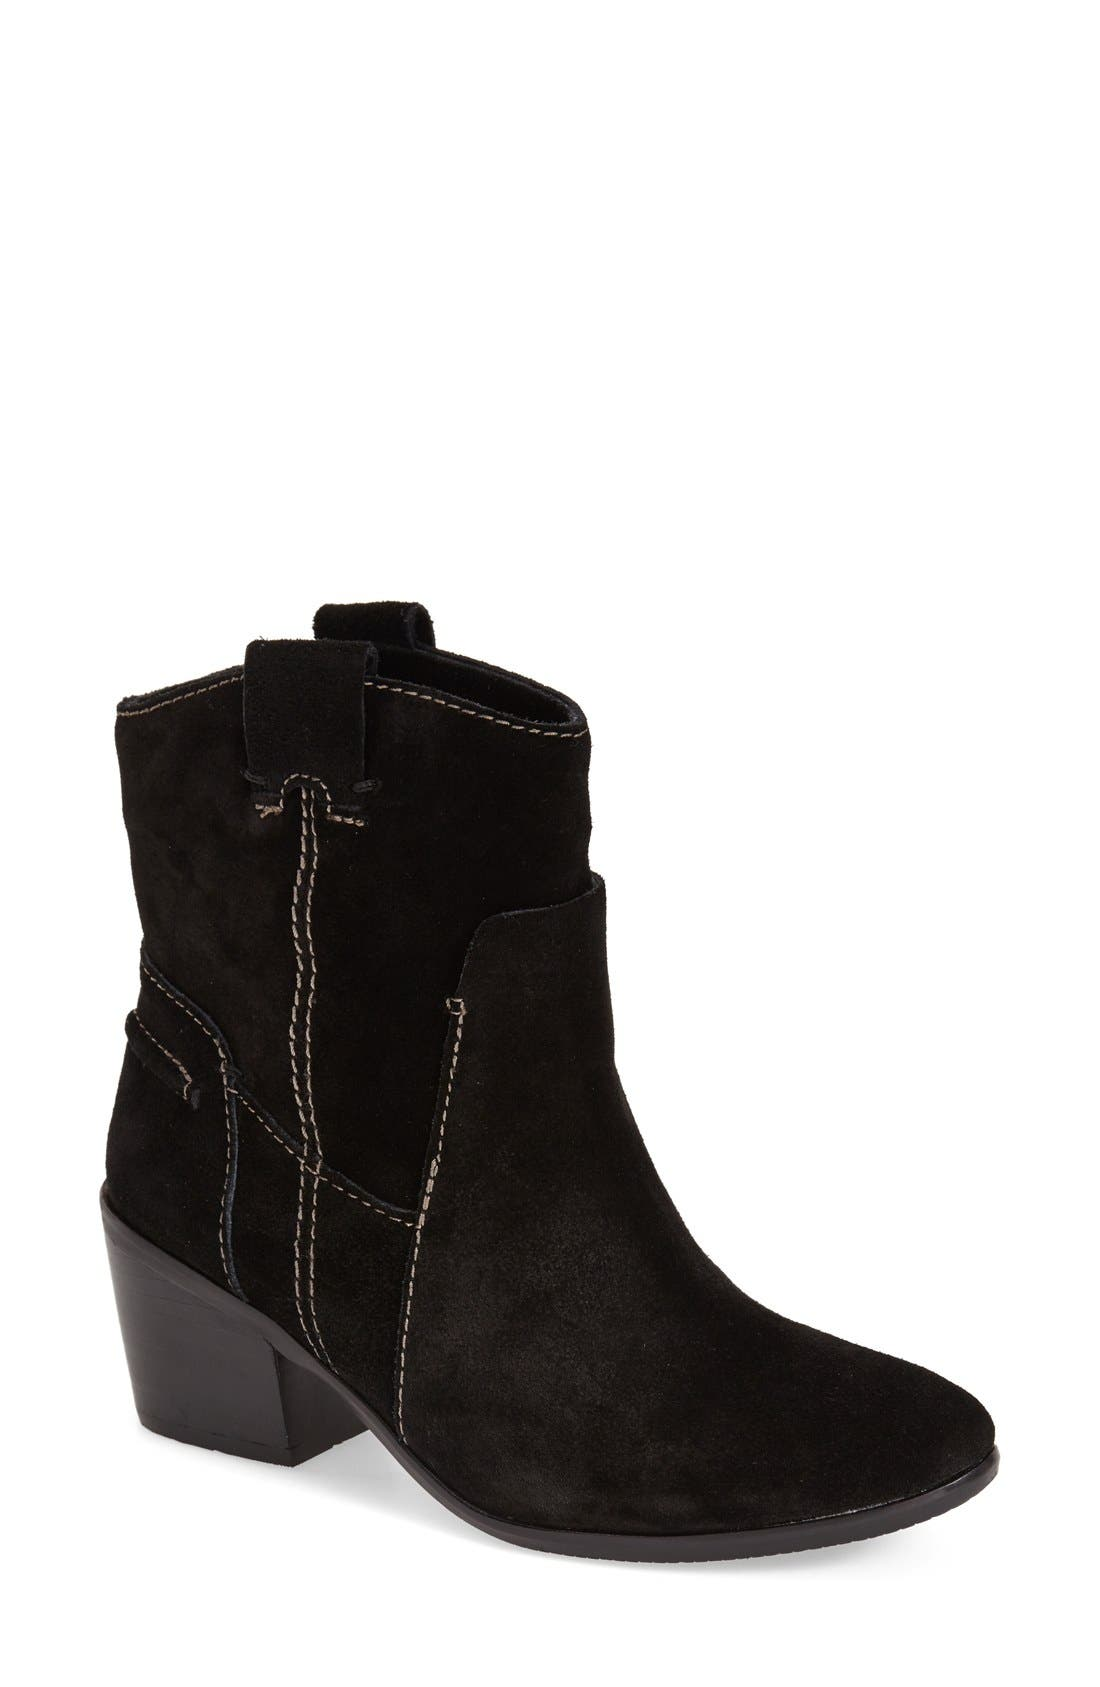 Alternate Image 1 Selected - Vince Camuto 'Maves' Bootie (Women) (Nordstrom Exclusive)